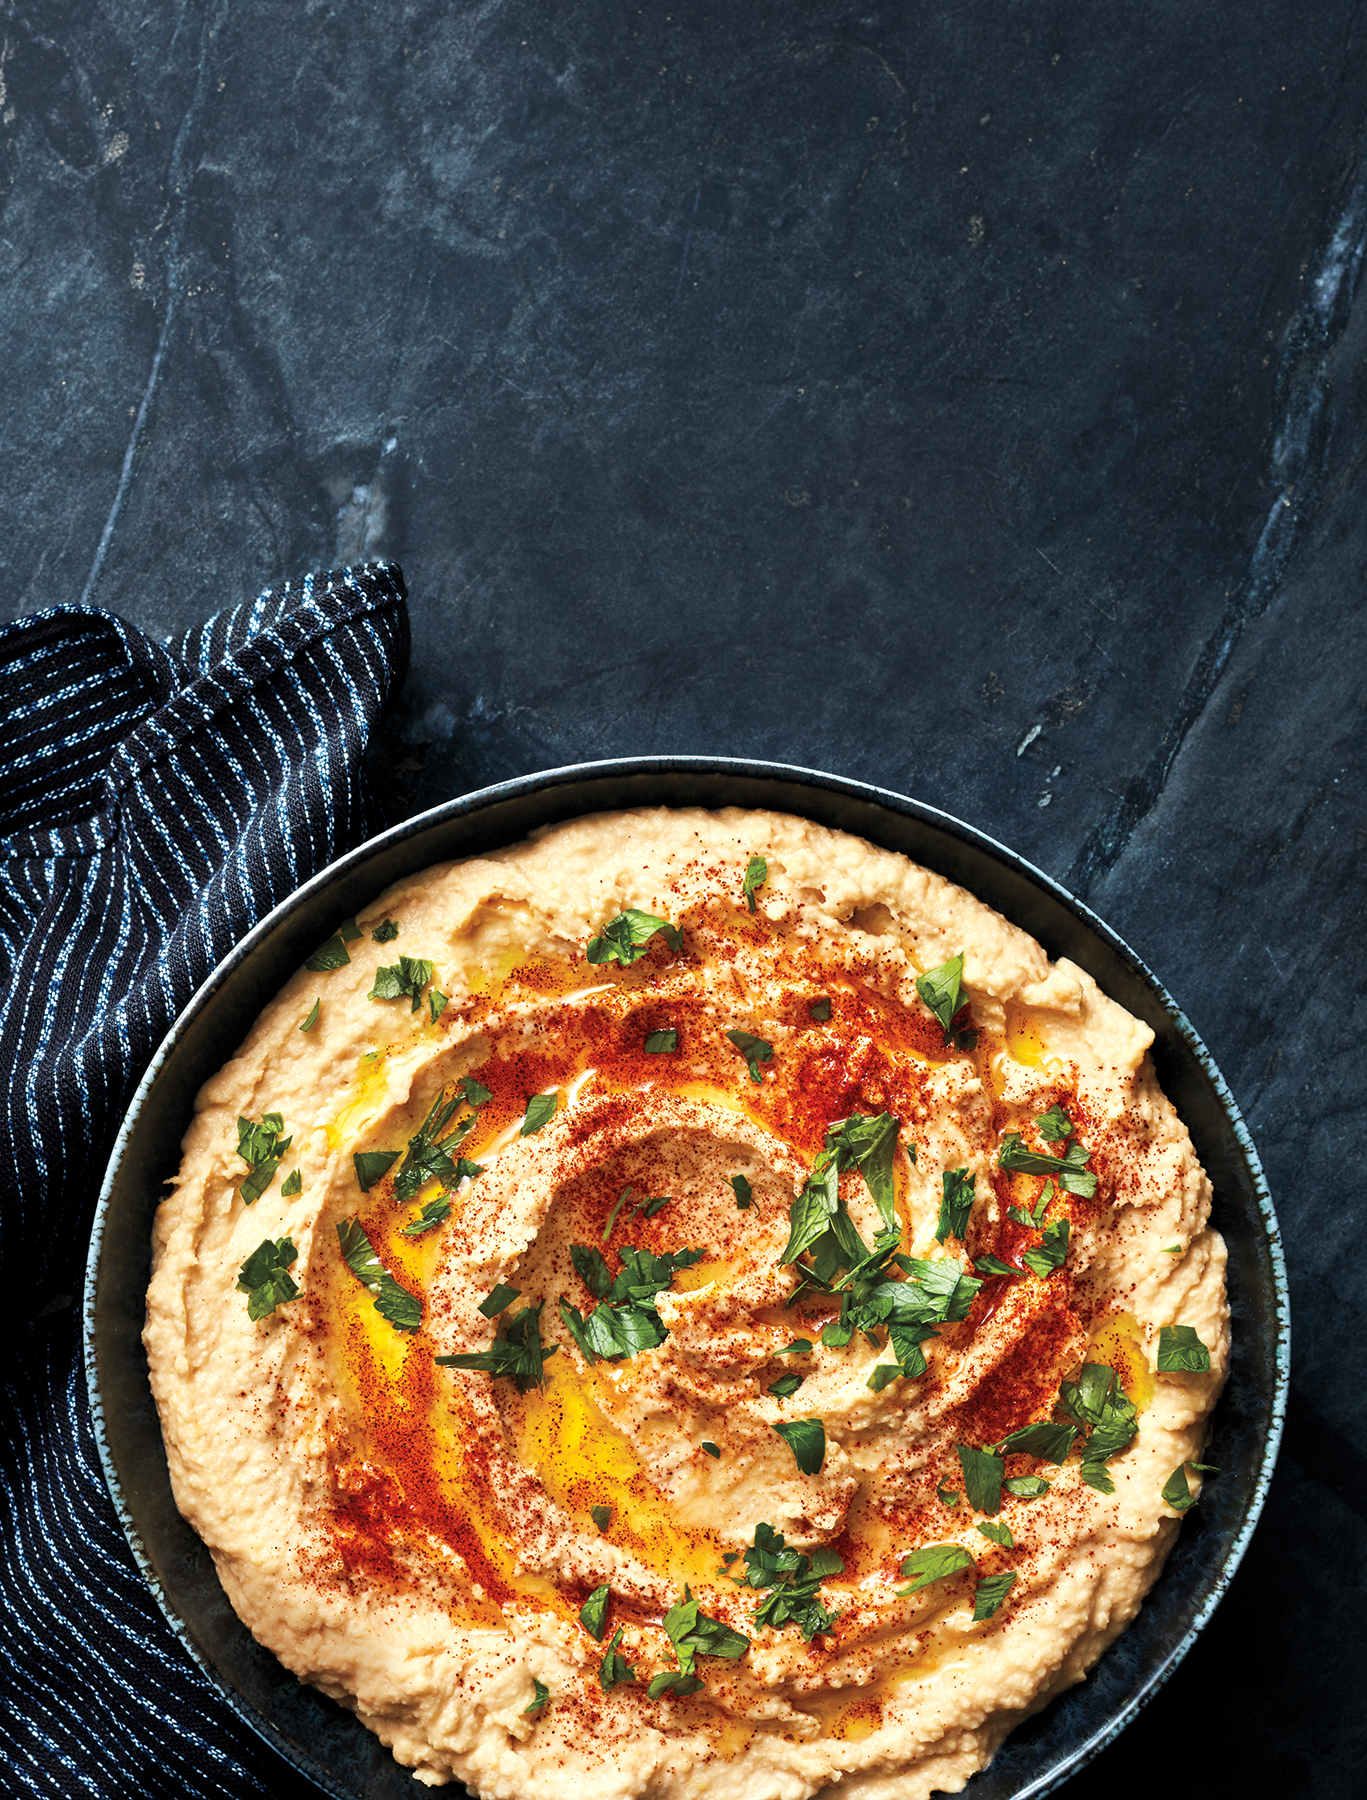 This Homemade Hummus Is So Good You'll Never Buy It From the Store Again